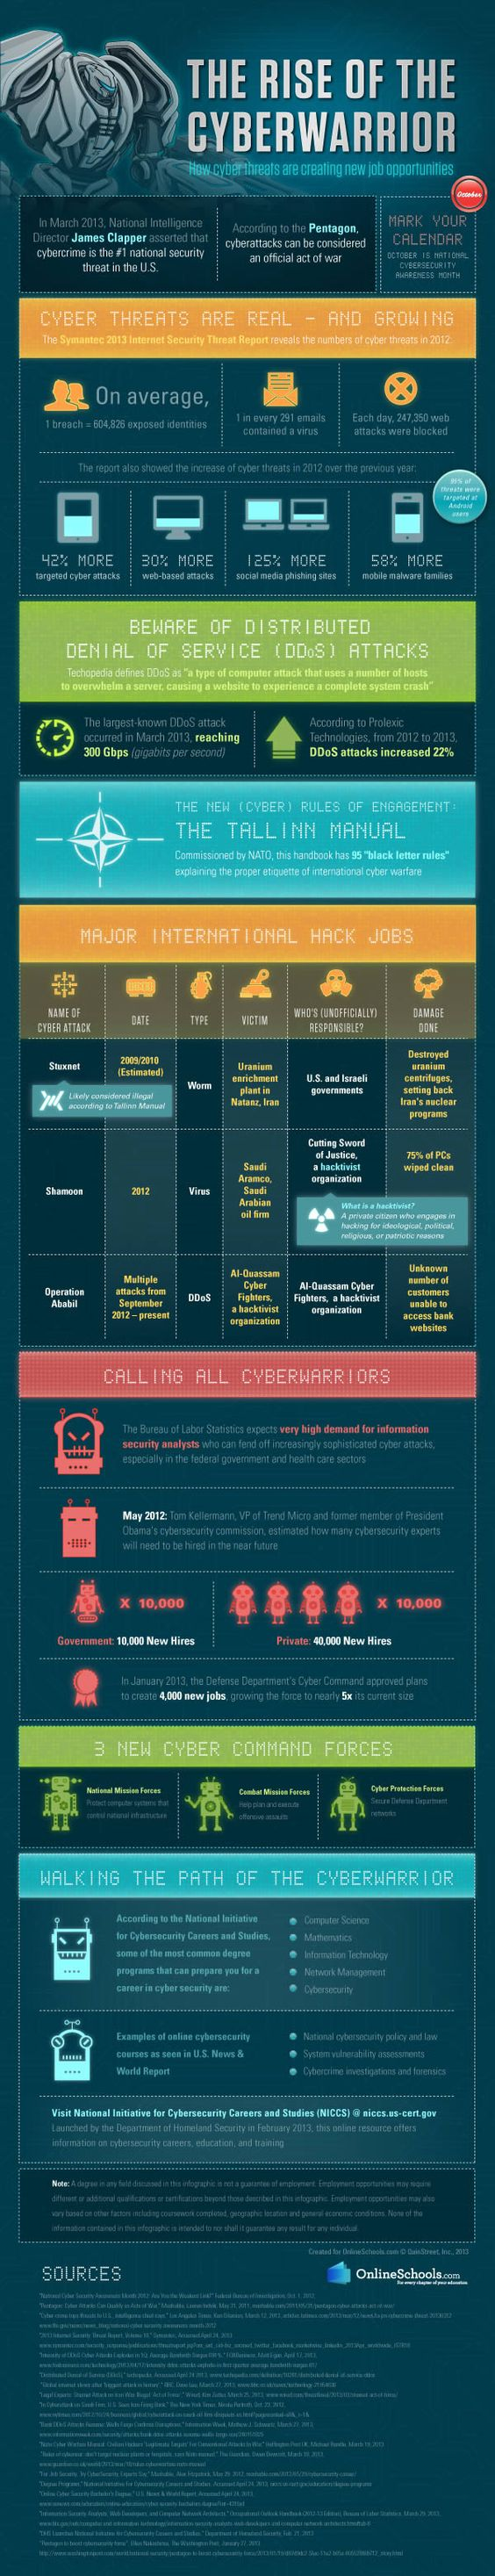 Rise of the cyber warrior: How cyber threats are creating new job opportunities [infographic]: